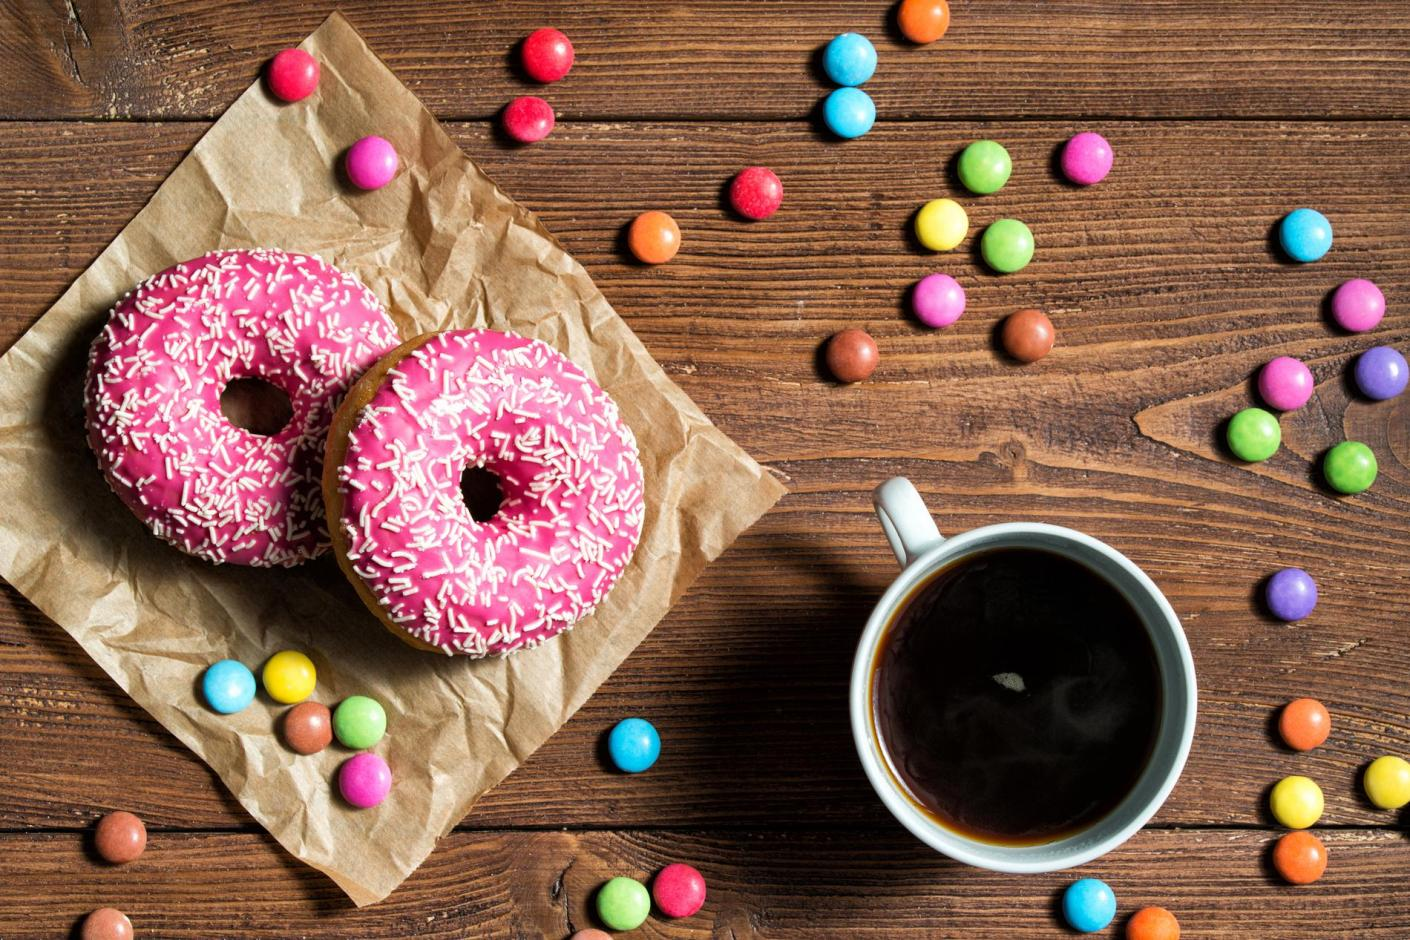 Two pink donuts and coffee on wooden table